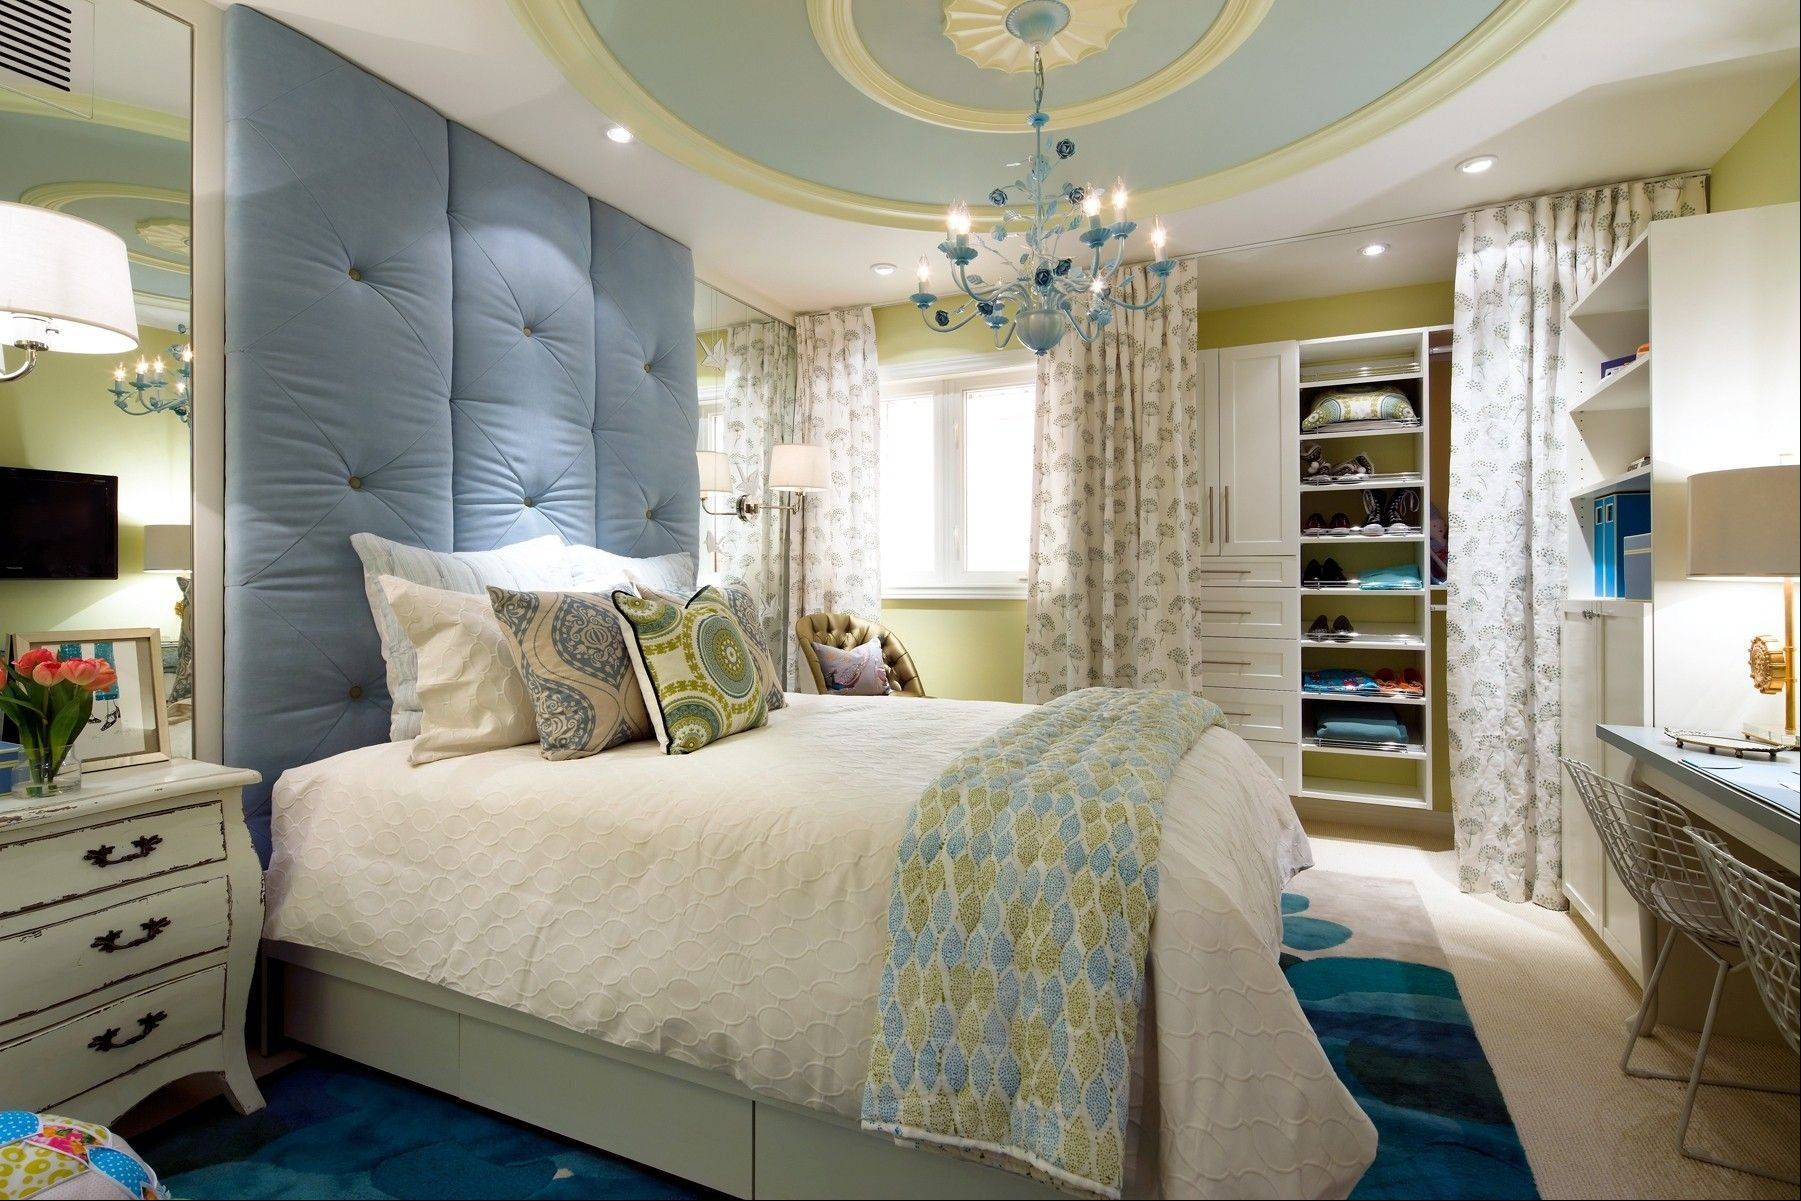 Kalista's room called for fresh and energetic greens, watery blues and soft yellows.